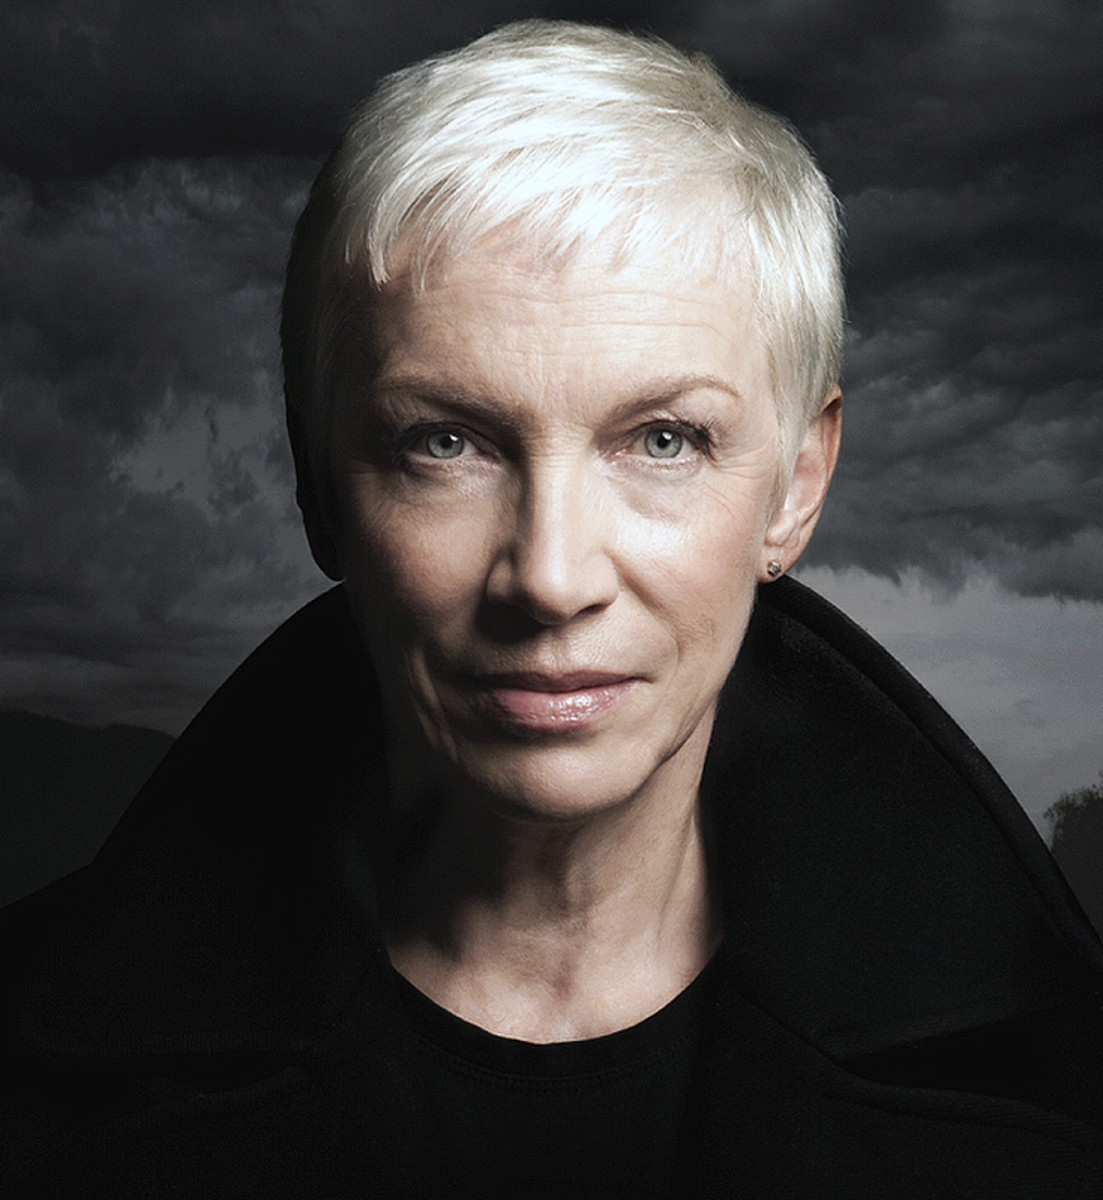 Annie Lennox_No crazy retouching, please. Nostalgia album cover image.